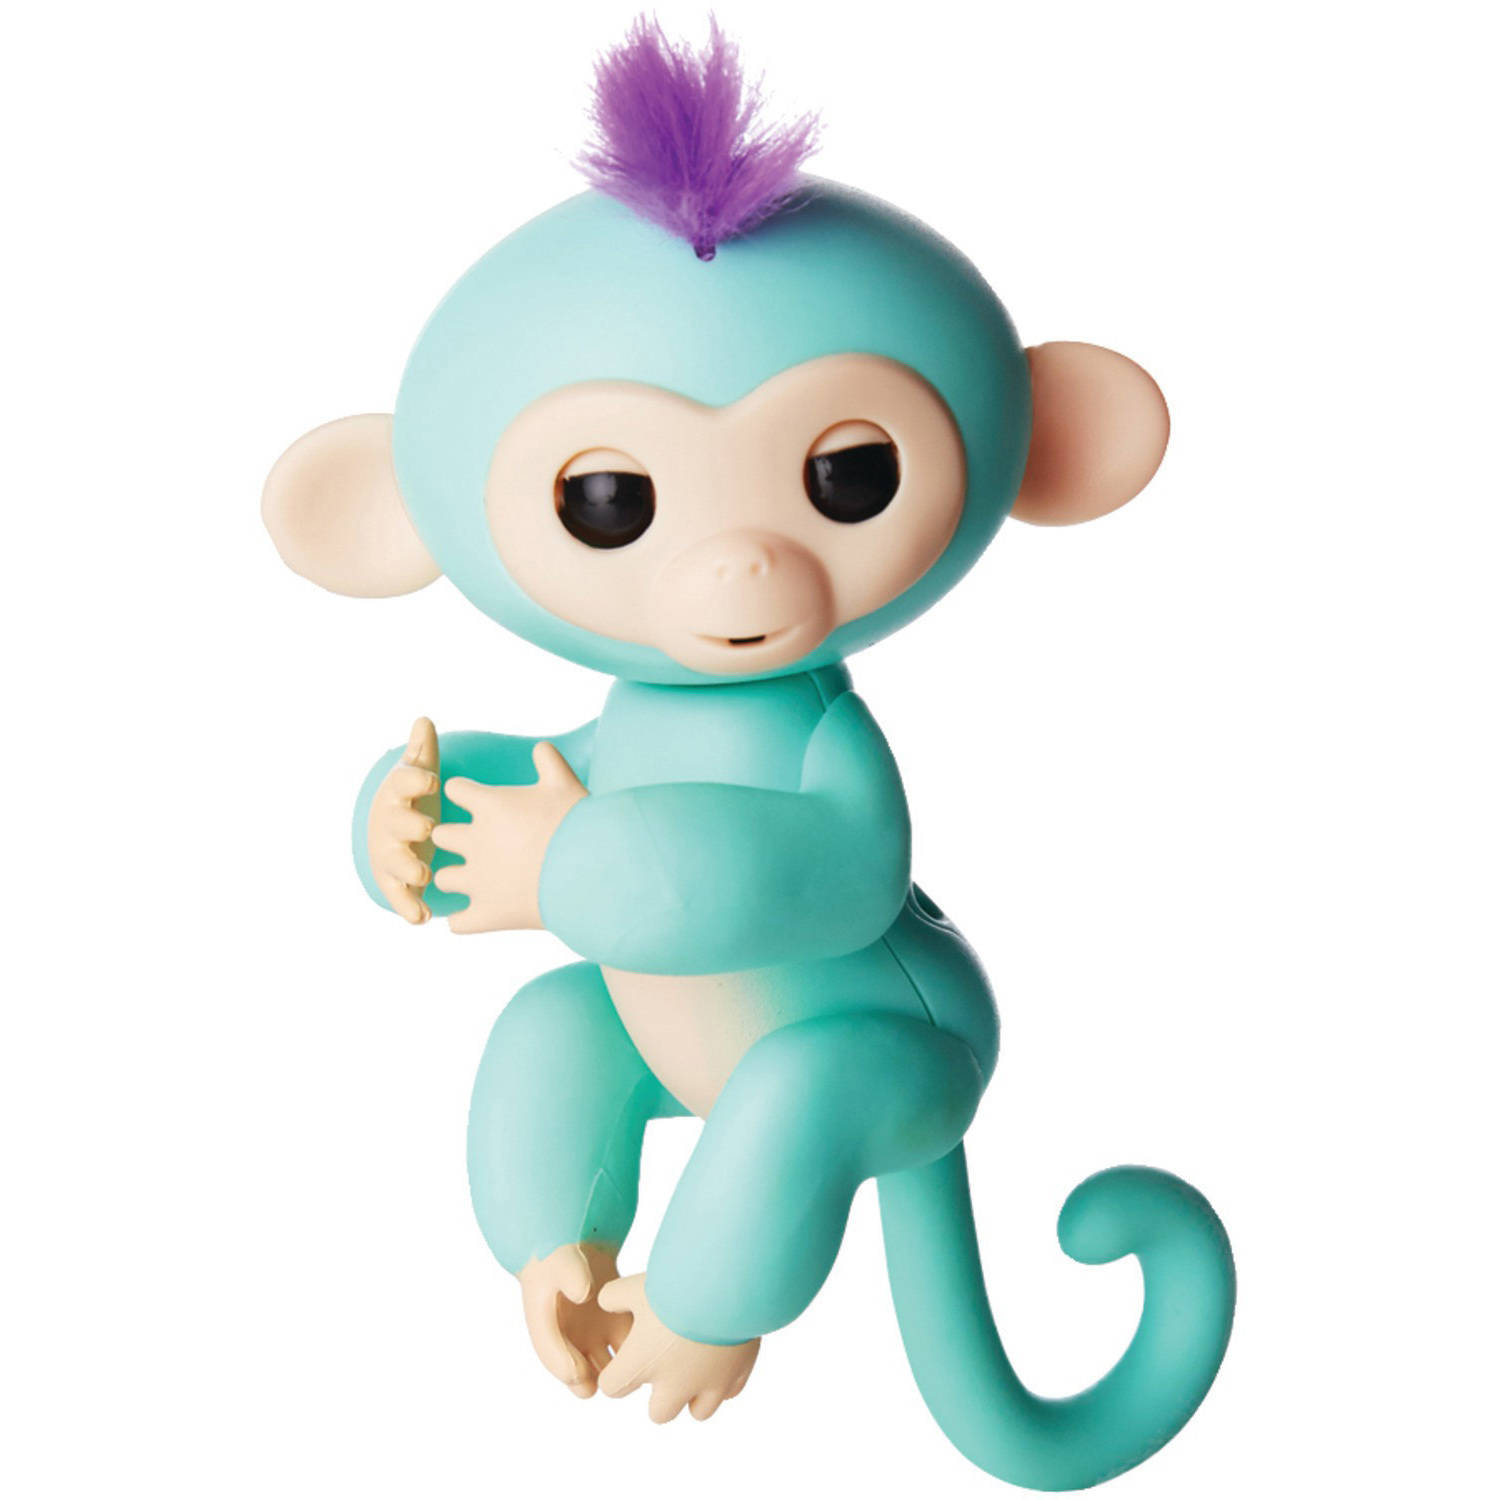 Fingerlings - Interactive Baby Monkey - Zoe (Turquoise with Purple Hair) By WowWee